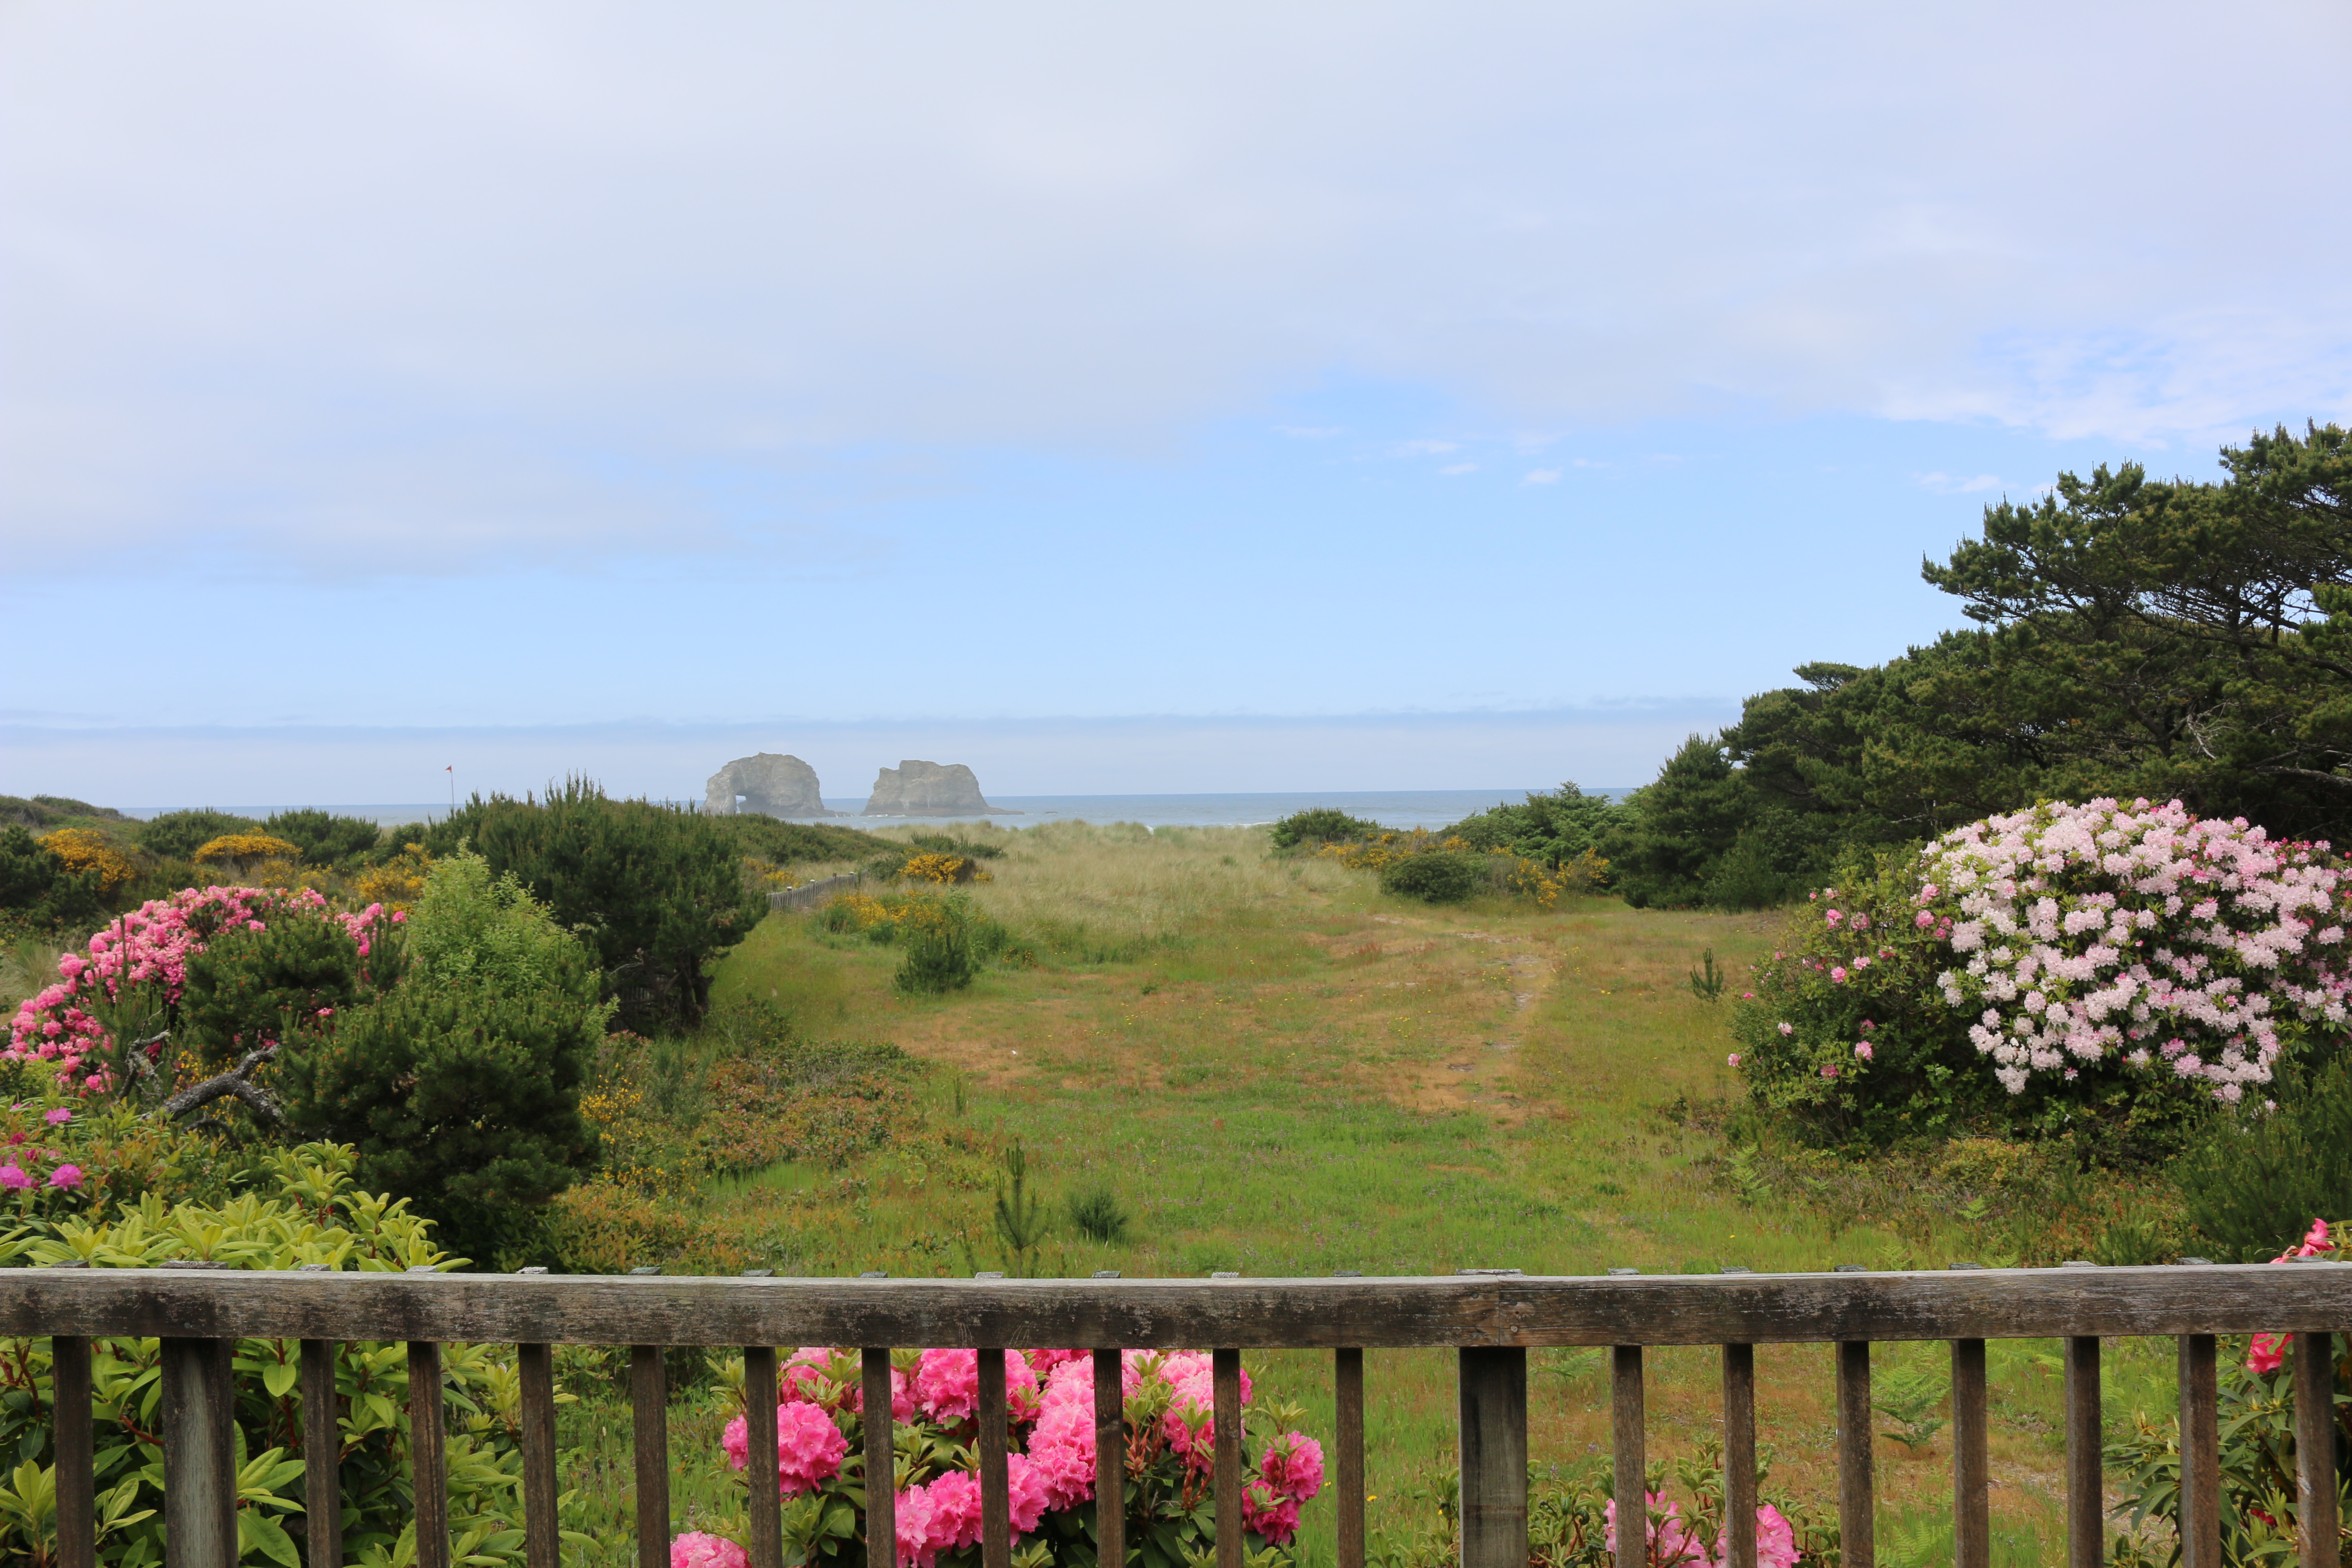 two large rocks in the ocean, a grassy and flowery garden, and a porch rail